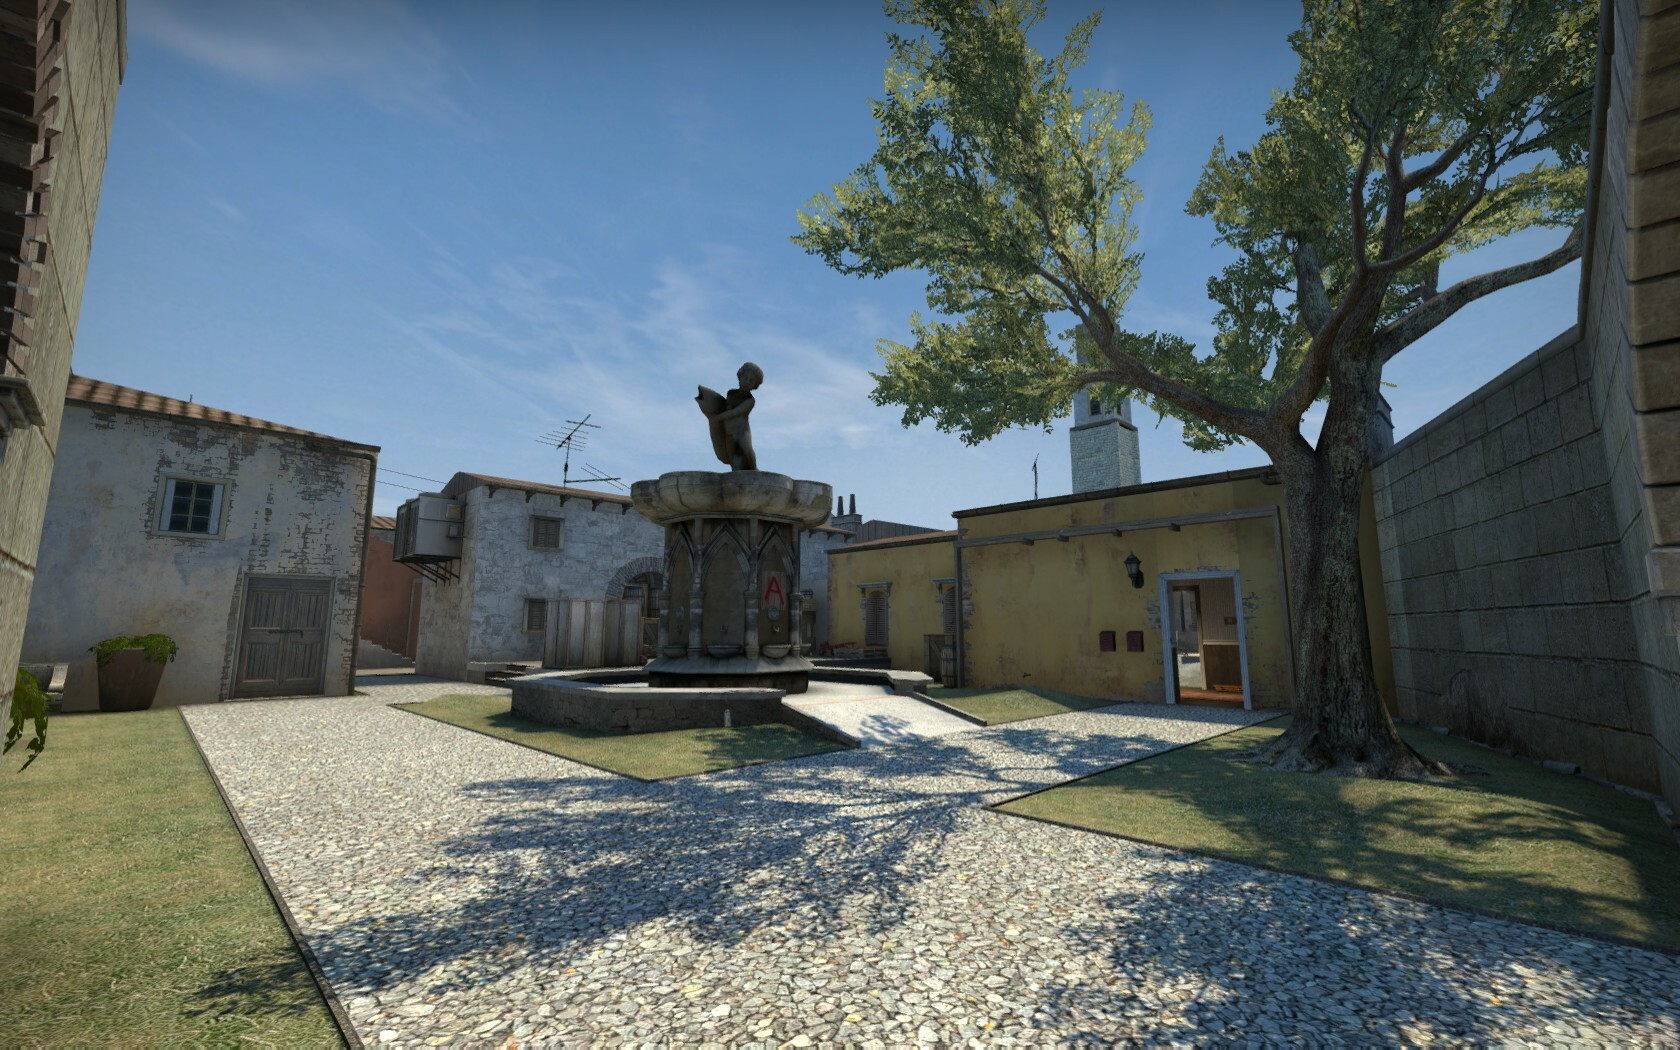 """The """"A-site"""" is similar to Cobblestones B-site in that it is situated around a statue feature."""